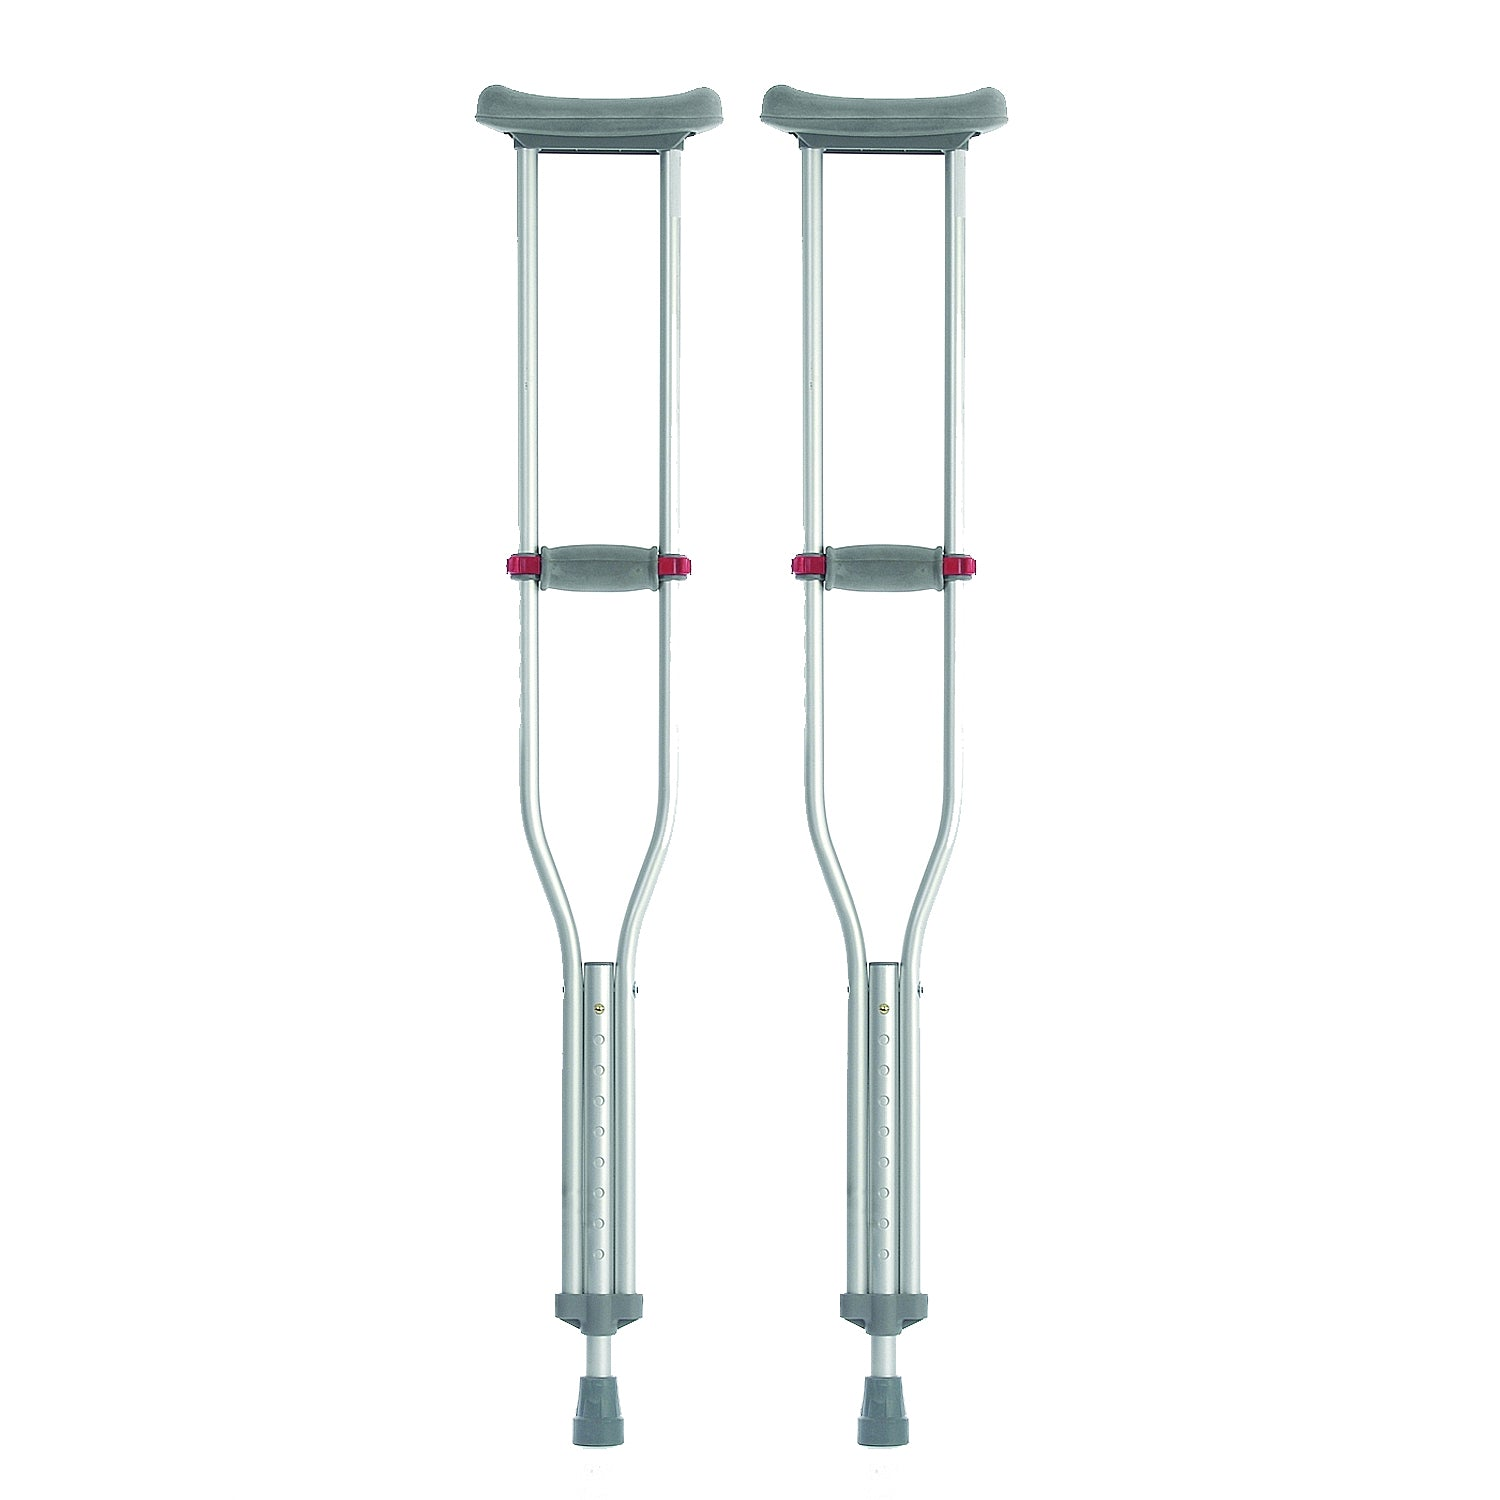 Coopers Red Dot Underarm Axilla Crutch (Pair)